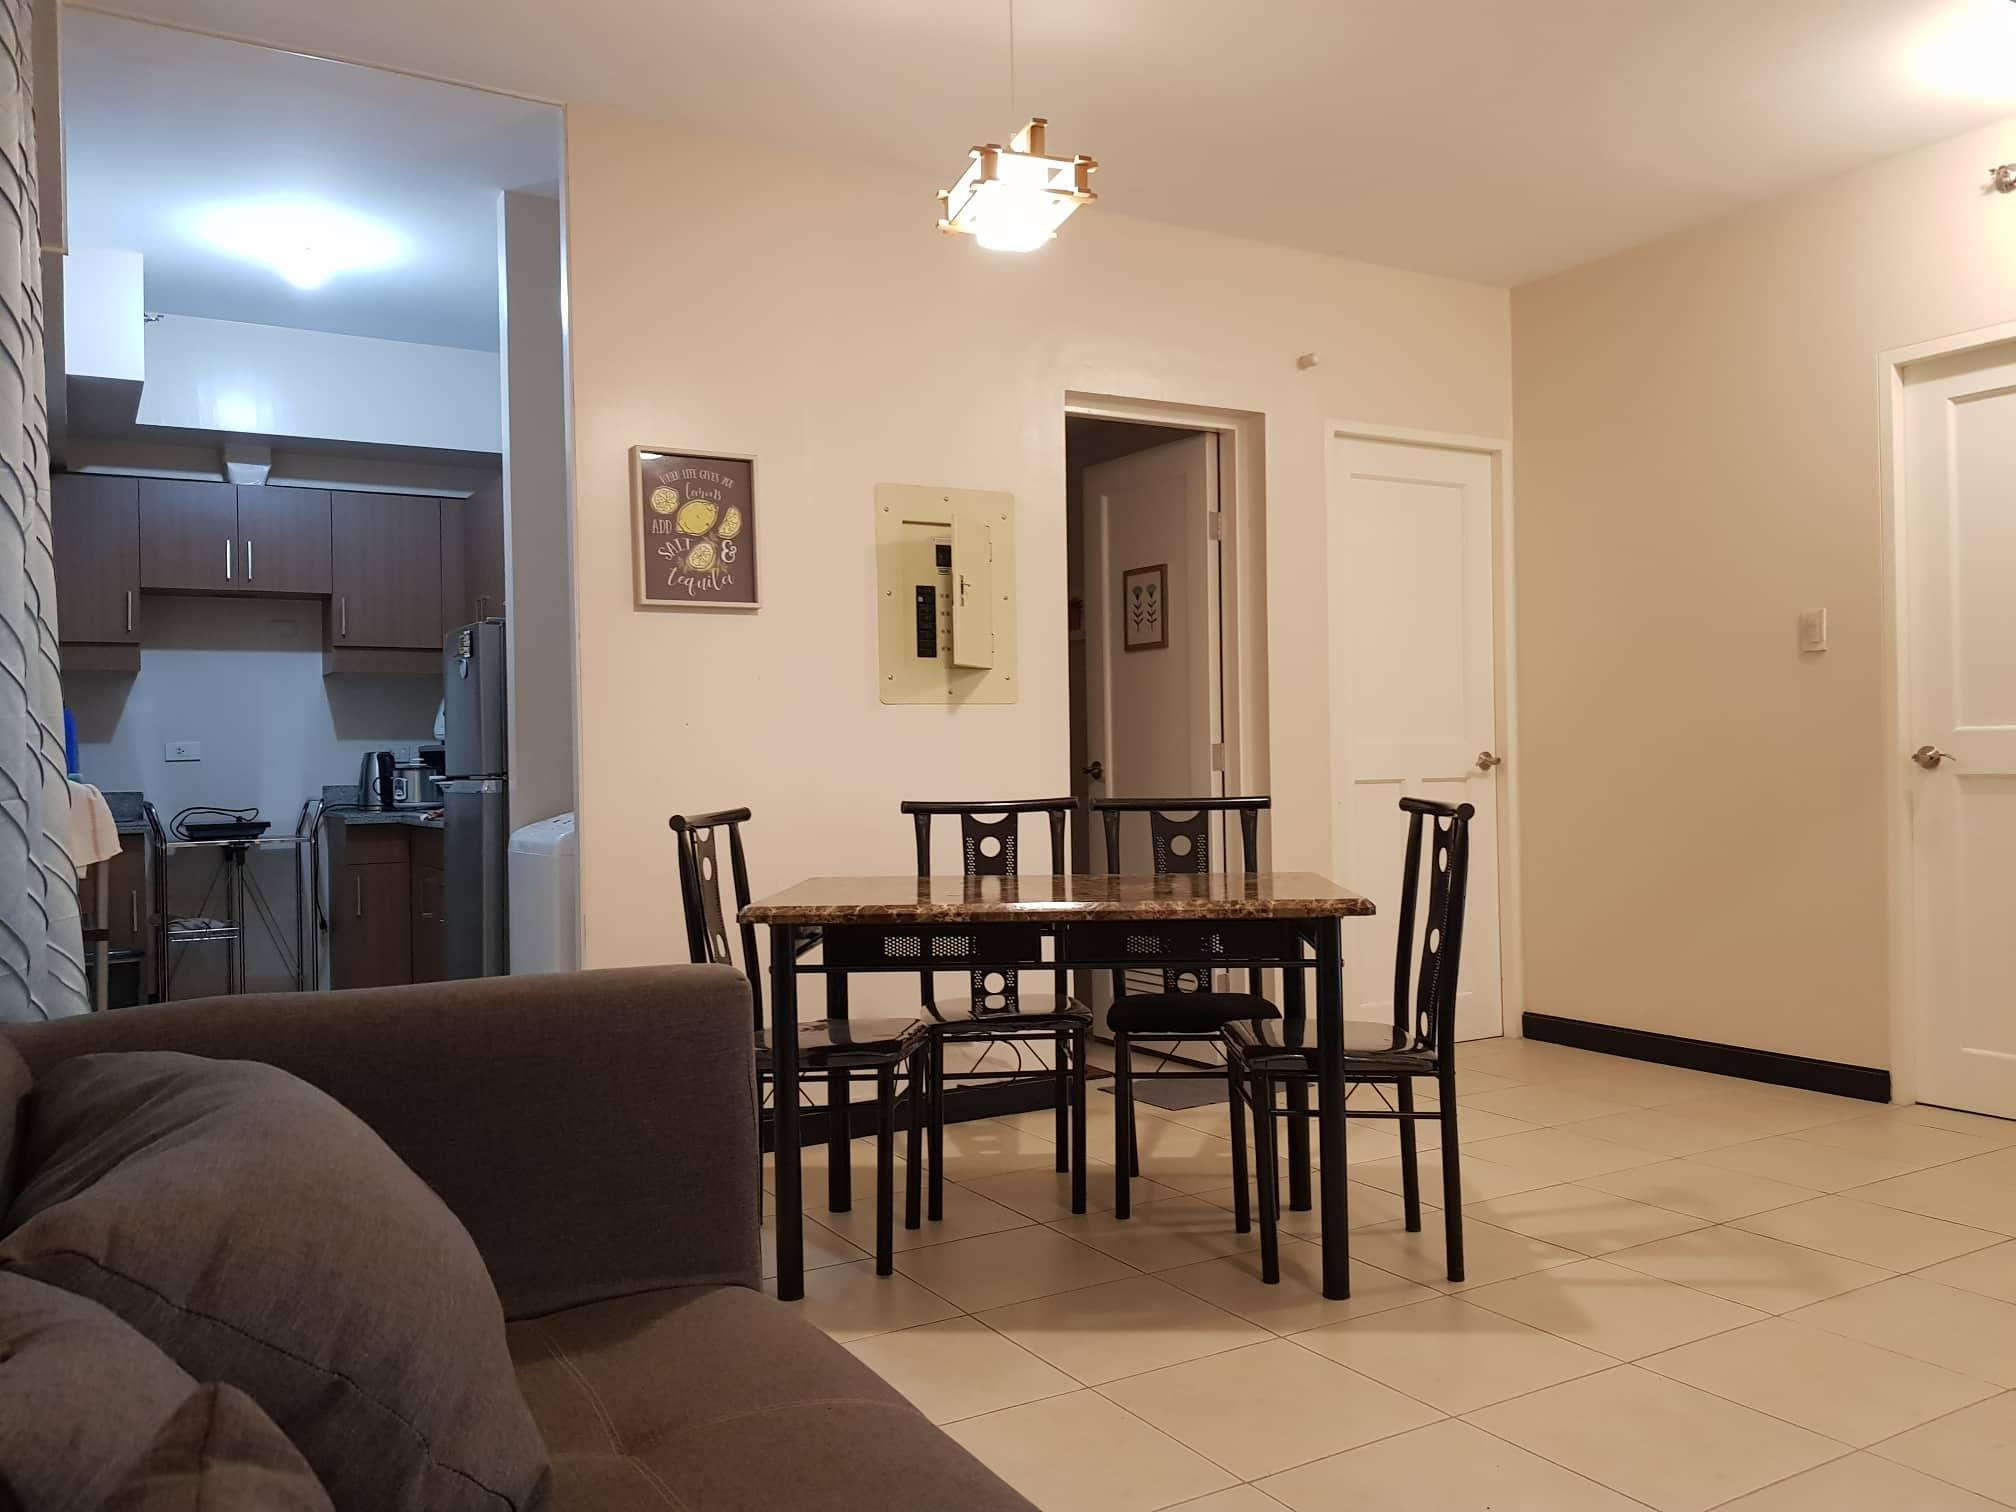 2 bedroom fully furnished unit with 2 balcony